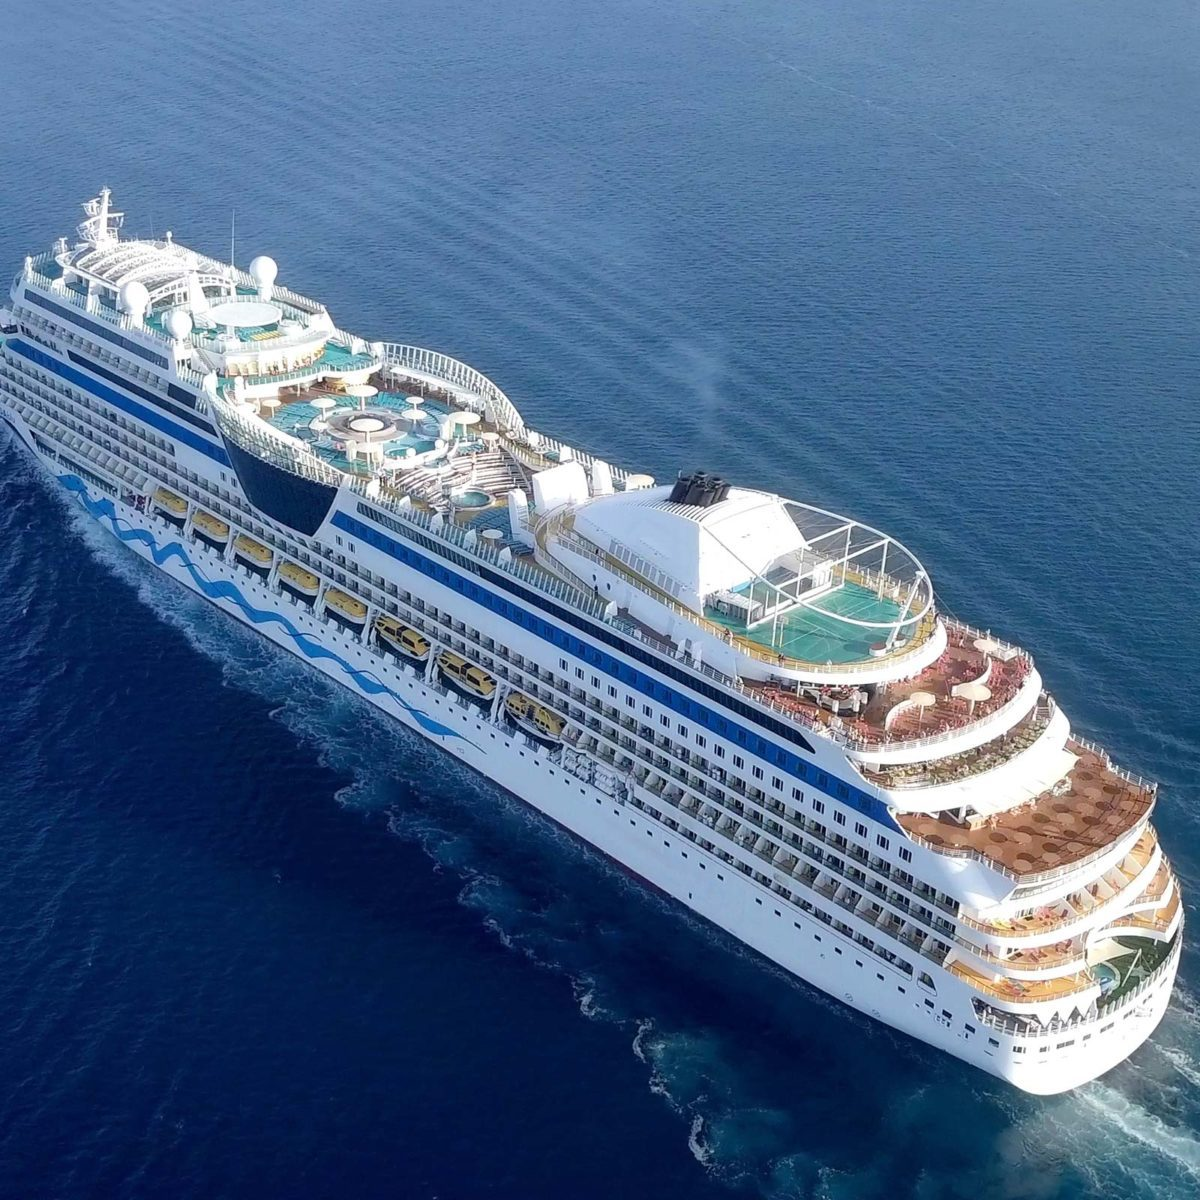 9 Code Words You Never Want to Hear on Cruise Ships